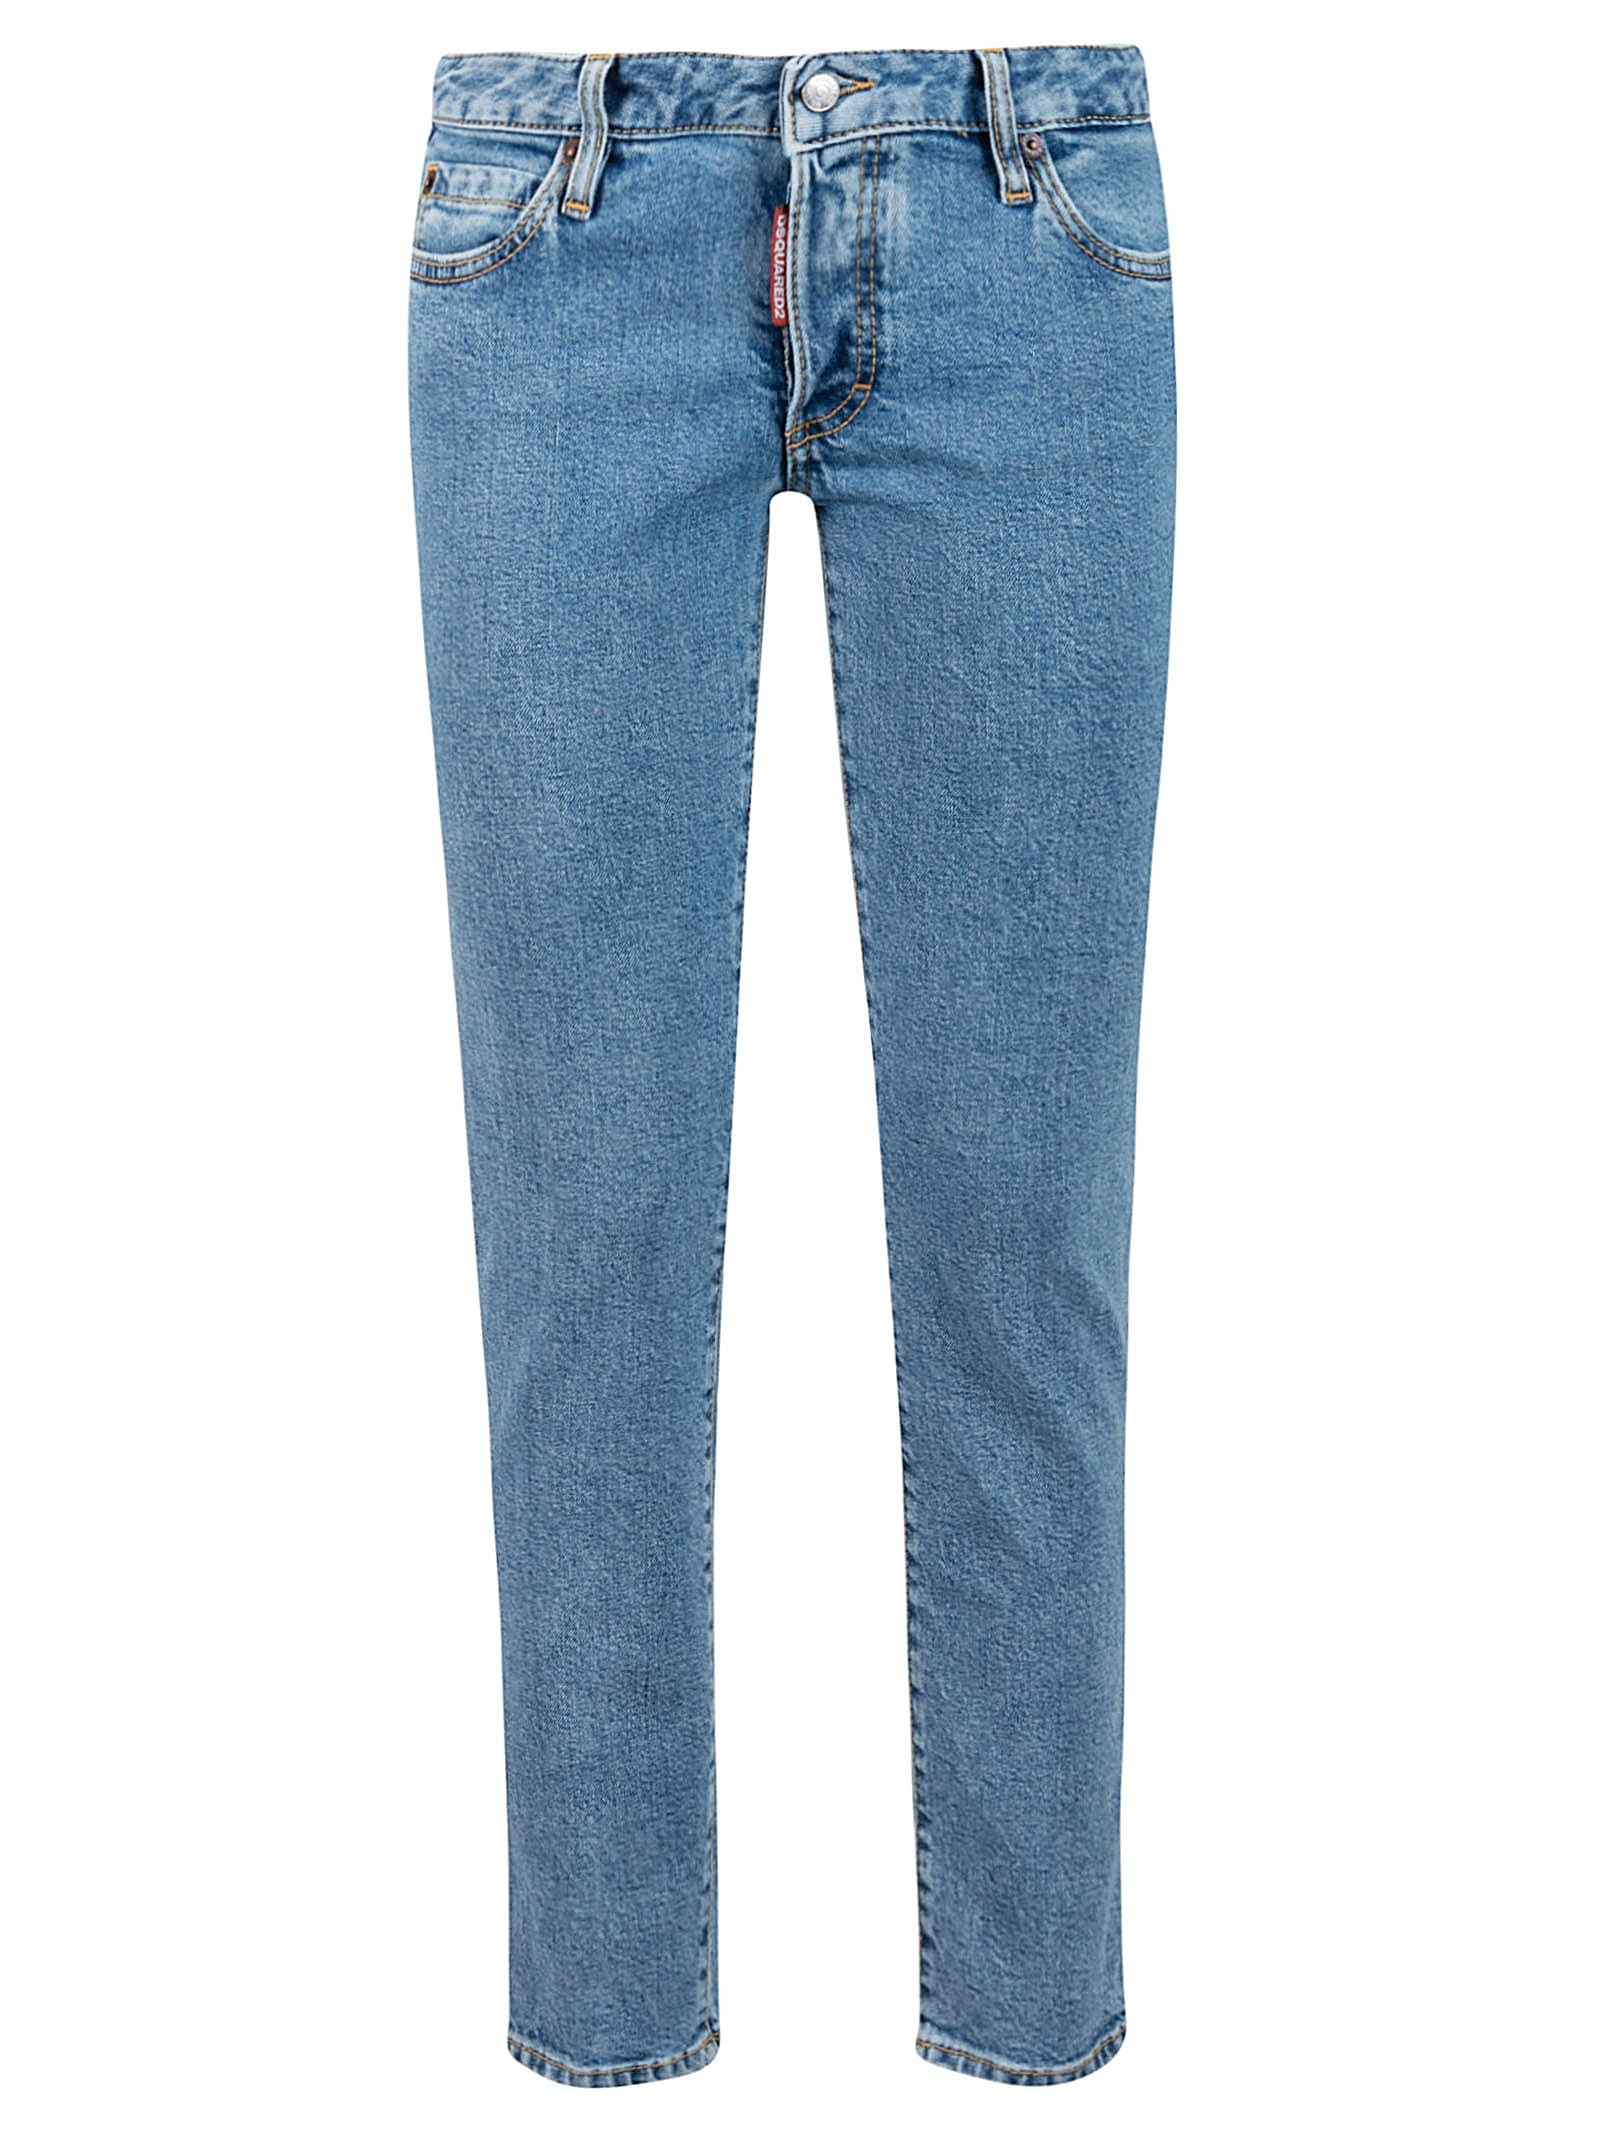 Dsquared2 Logo Jeans from Dsquared2Composition: 99% Cotton, 1% Elastane